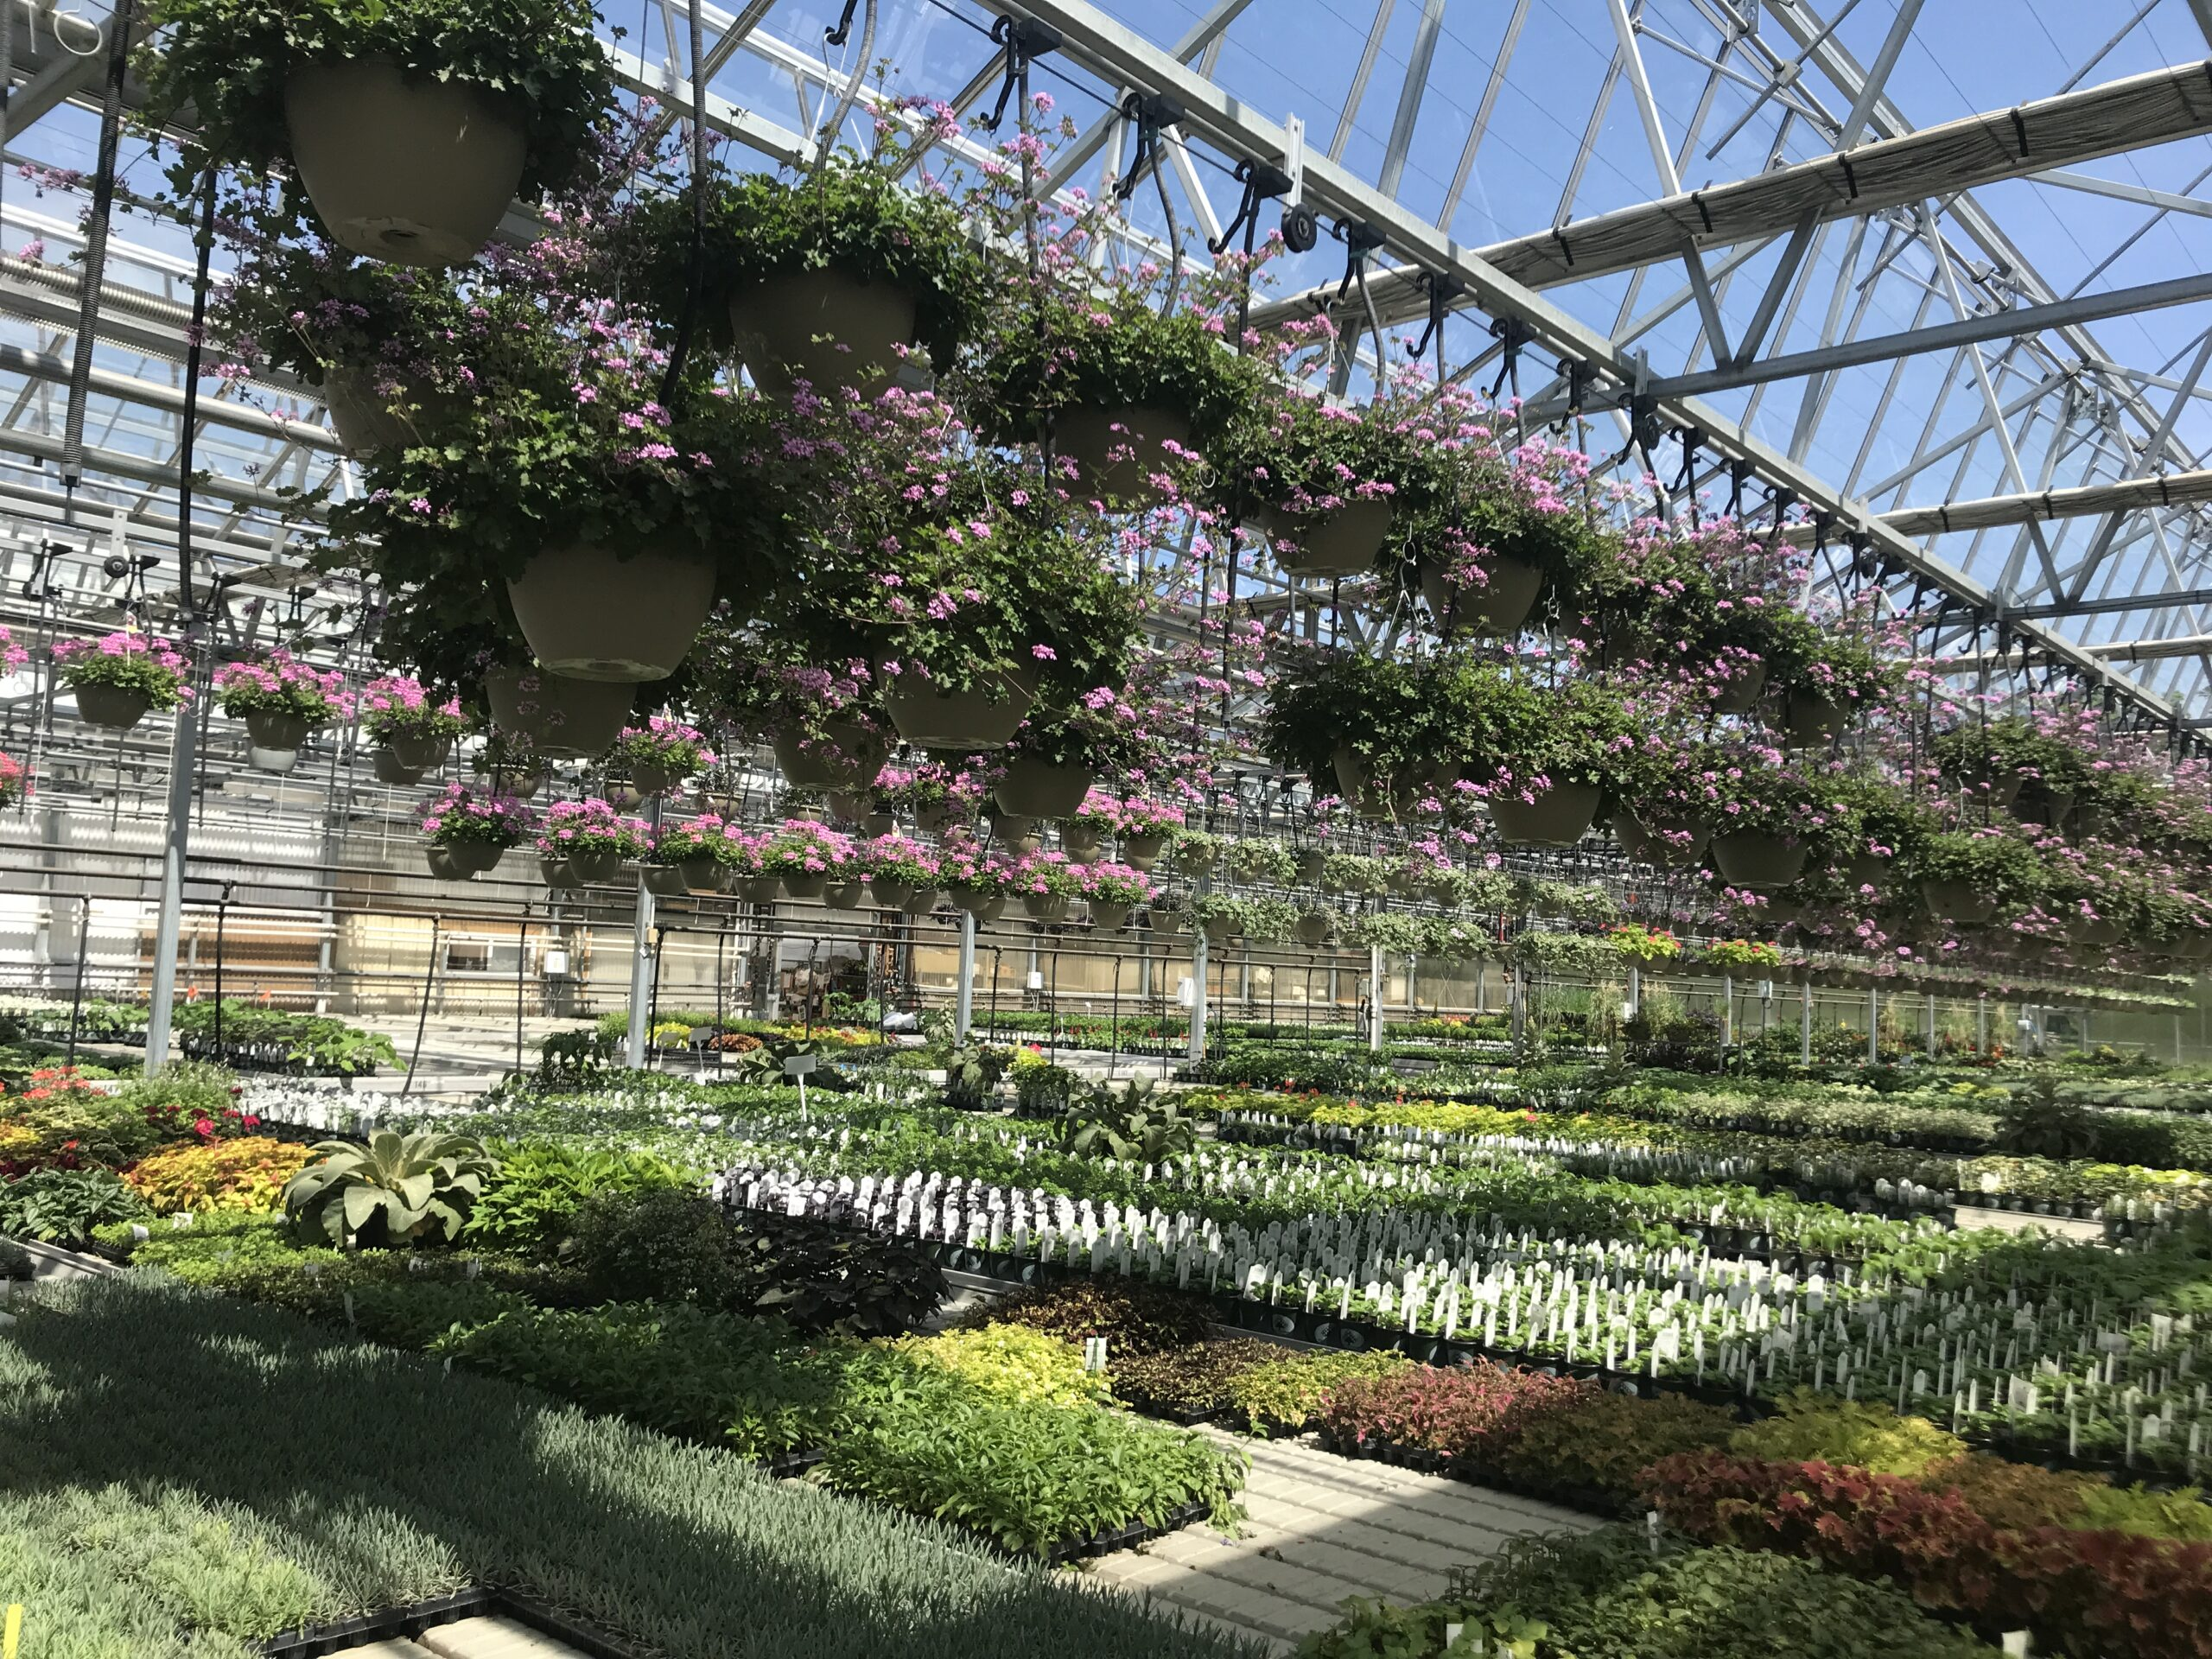 Hiring Greenhouse Assistants at Peace Tree Farm in Bucks County, PA